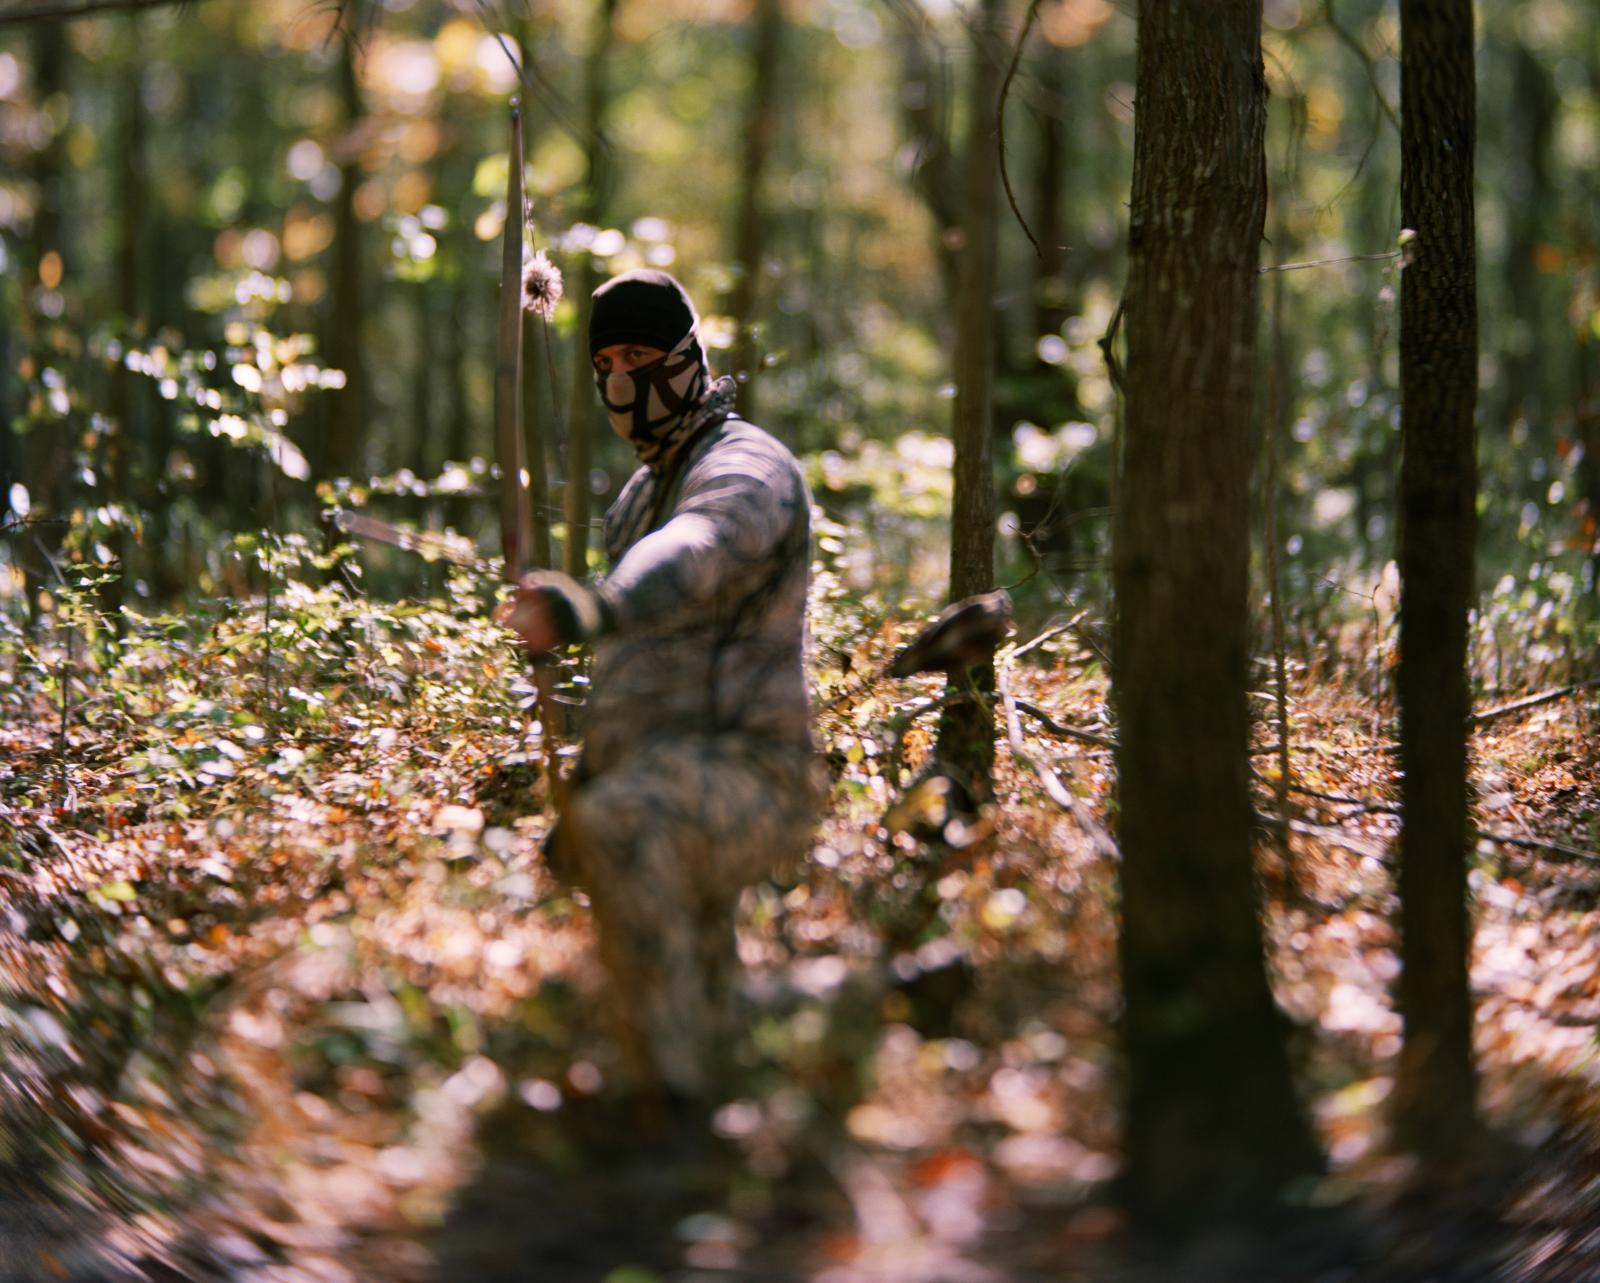 Hunter, Big Oakes Wildlife Refuge, Madison, Indiana, October 22, 2016  A traditional bow hunter poses in the woods during deer hunting weekend at the Big Oakes Wildlife Refuge. Big Oakes lies on the former Jefferson Proving Ground, which operated from 1941 – 1995 as a training ground for US Army weapons. More than 24 million rounds were fired on the grounds. At the height of its operation – the Korean War - 175,000 rounds were fired per month. From 1984-1994, JPG test fired 100,000 kg [220,462 lbs.] of tank penetrator rounds containing depleted uranium (DU). Despite some cleanup, the area still contains 154,324 lbs.] of DU and 1.5 million rounds of unexploded ordinance (UXO) In 2000, the Department of Defense worked out an arrangement with the US Fish and Wildlife Service which took over stewardship of the contaminated landscape and established the Big Oaks Wildlife Refuge on 51, 000 acres of the former proving ground. The land is too contaminated with DU and littered with so much unexploded ordnance that it can never be developed commercially or developed for human habitation.  And so only a few areas have been cleared for human leisure activities and a few weekends a year, hunters are allowed on certain parcels. The landscape presents a paradox. It looks pristine but only because it's so contaminated that much of it is a closed zone.